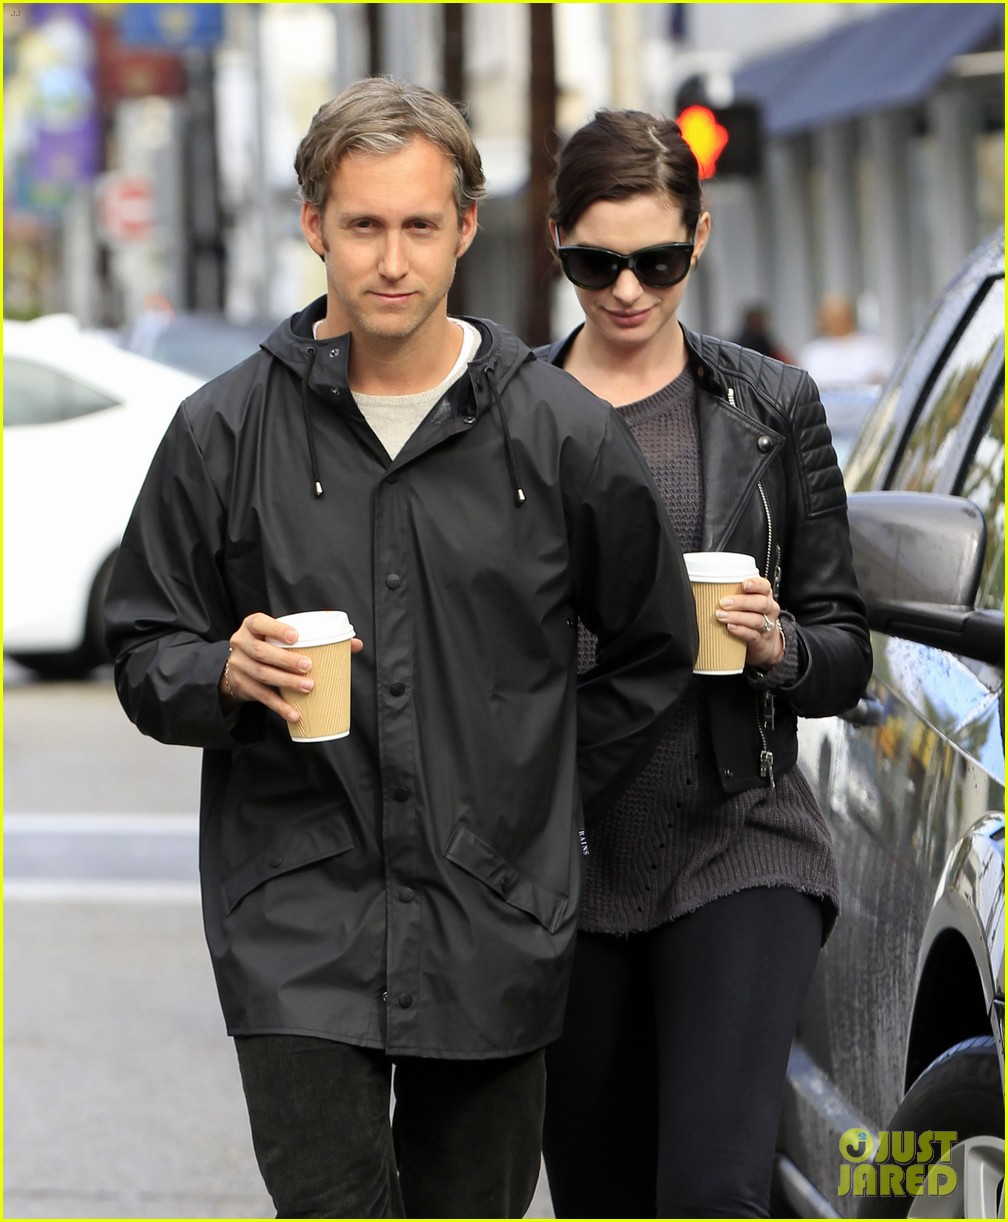 Anne Hathaway Takes Her Baby Bump For A Coffee Run!: Photo